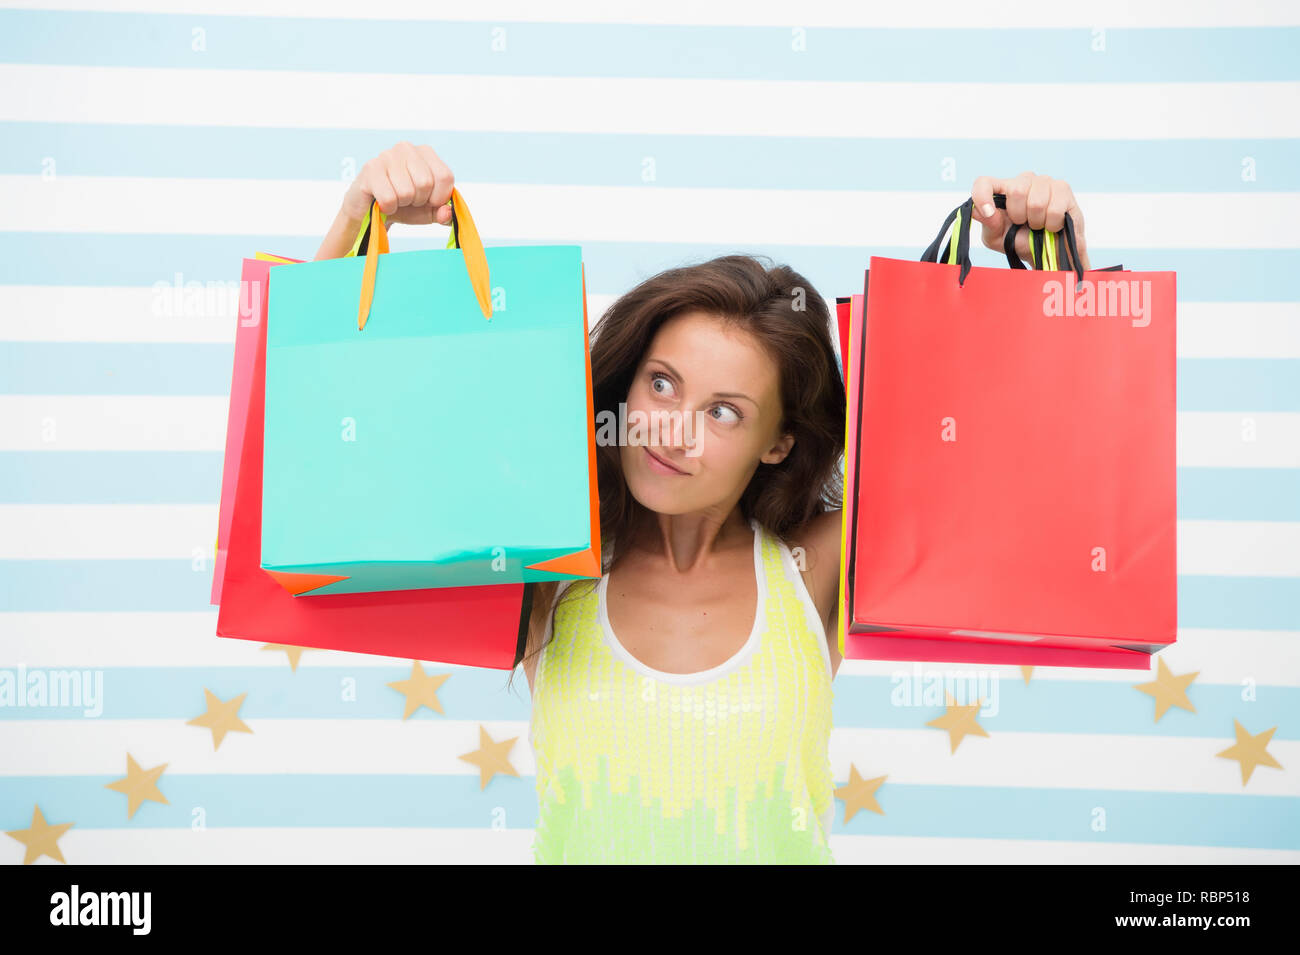 happy shopping. surprised girl with shopping bags on sale, copy space. e commerce marketing and internet ordering purchase. retail therapy for crazy shopaholic. special offer for summer sale - Stock Image